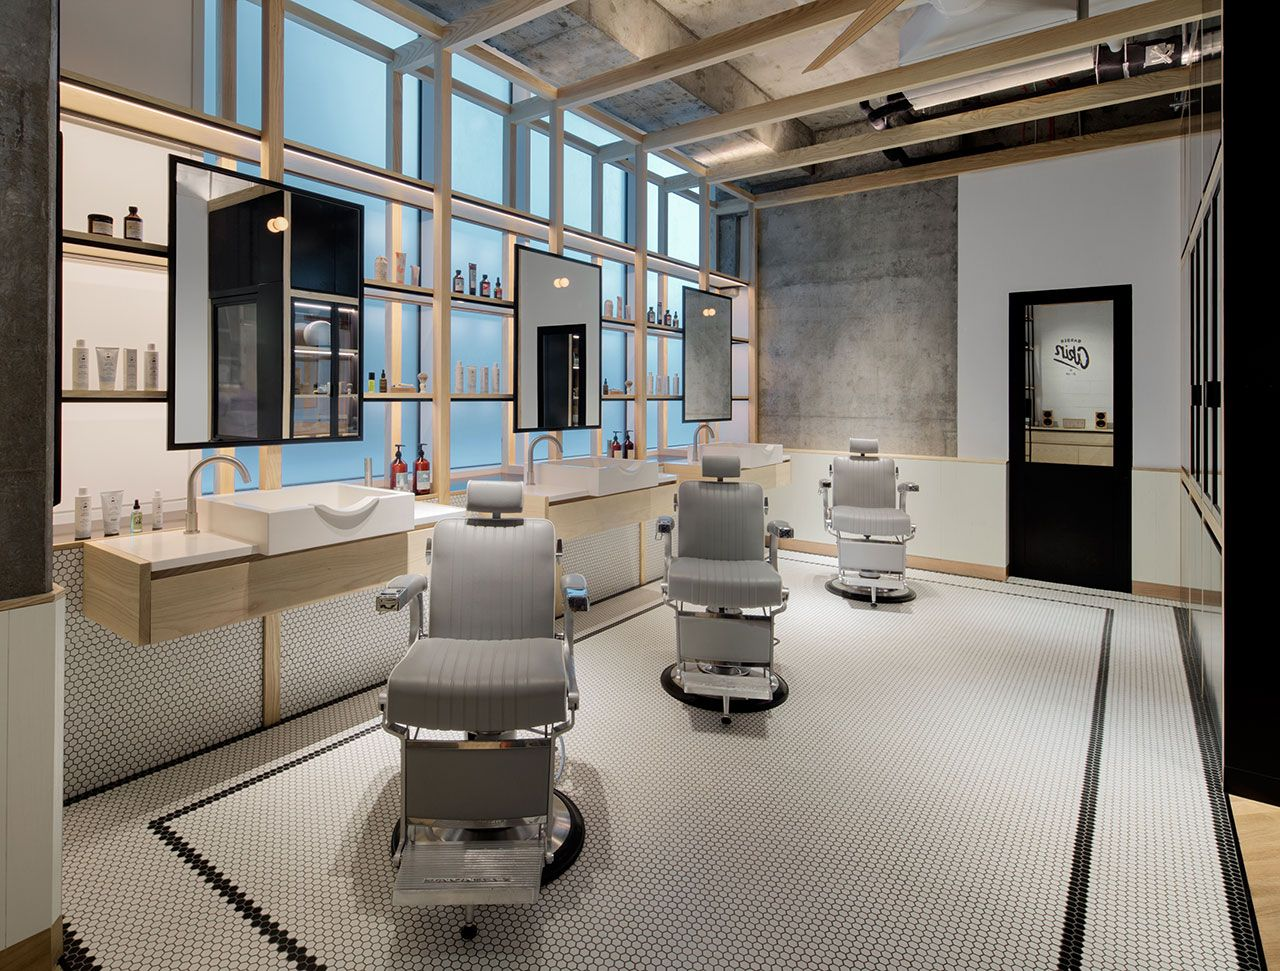 clean cut minimalism and tradition at akin barber shop in dubai - Barber Shop Design Ideas